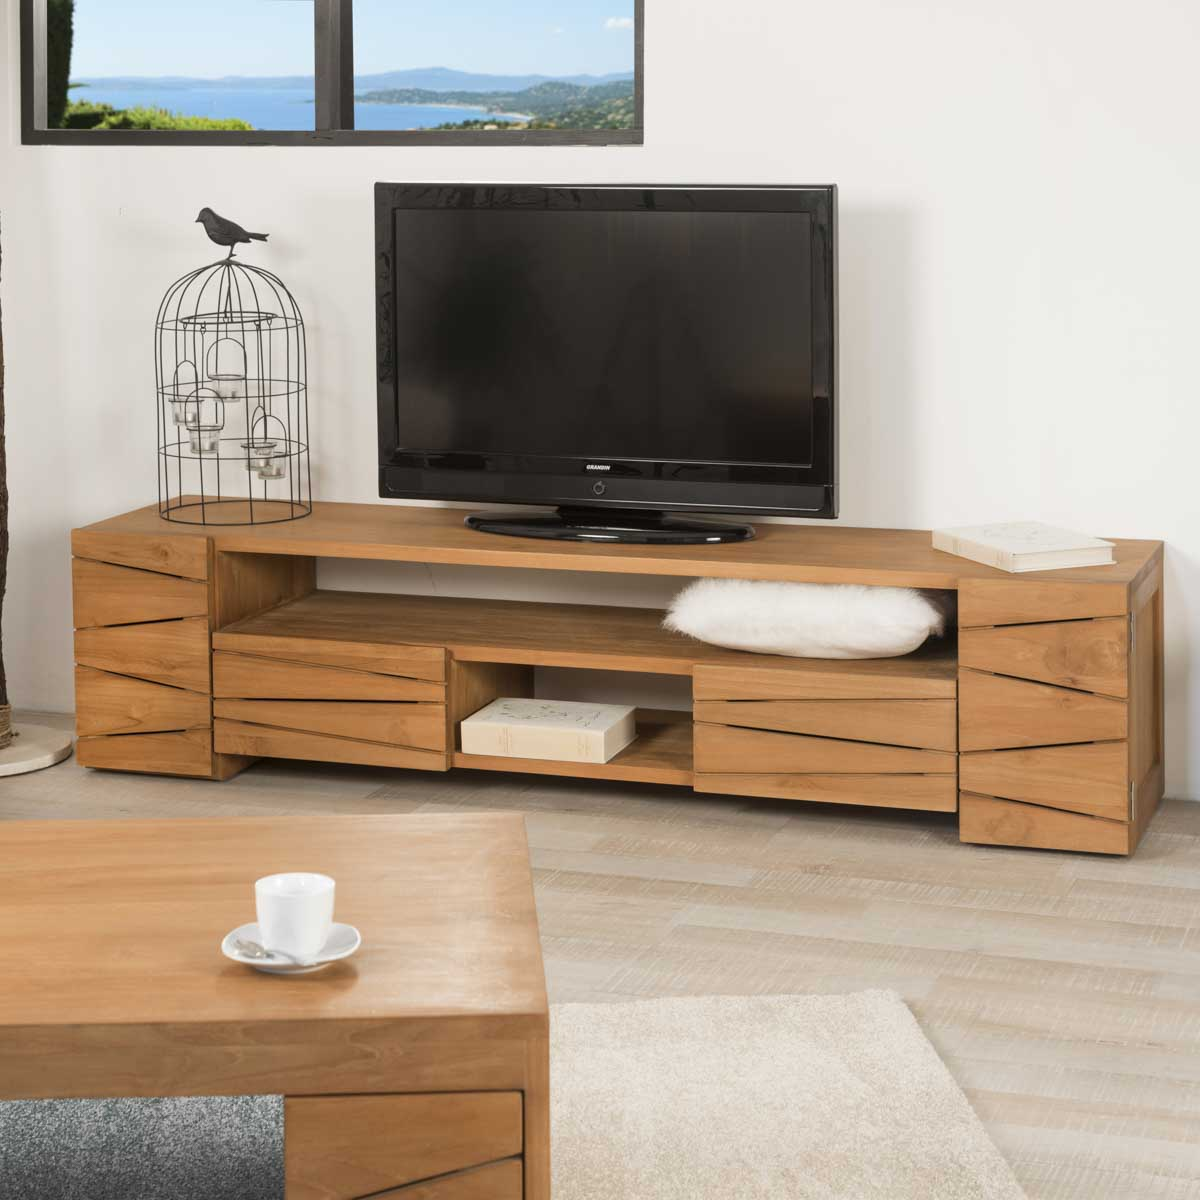 meuble tv teck meuble tv bois naturel rectangle. Black Bedroom Furniture Sets. Home Design Ideas